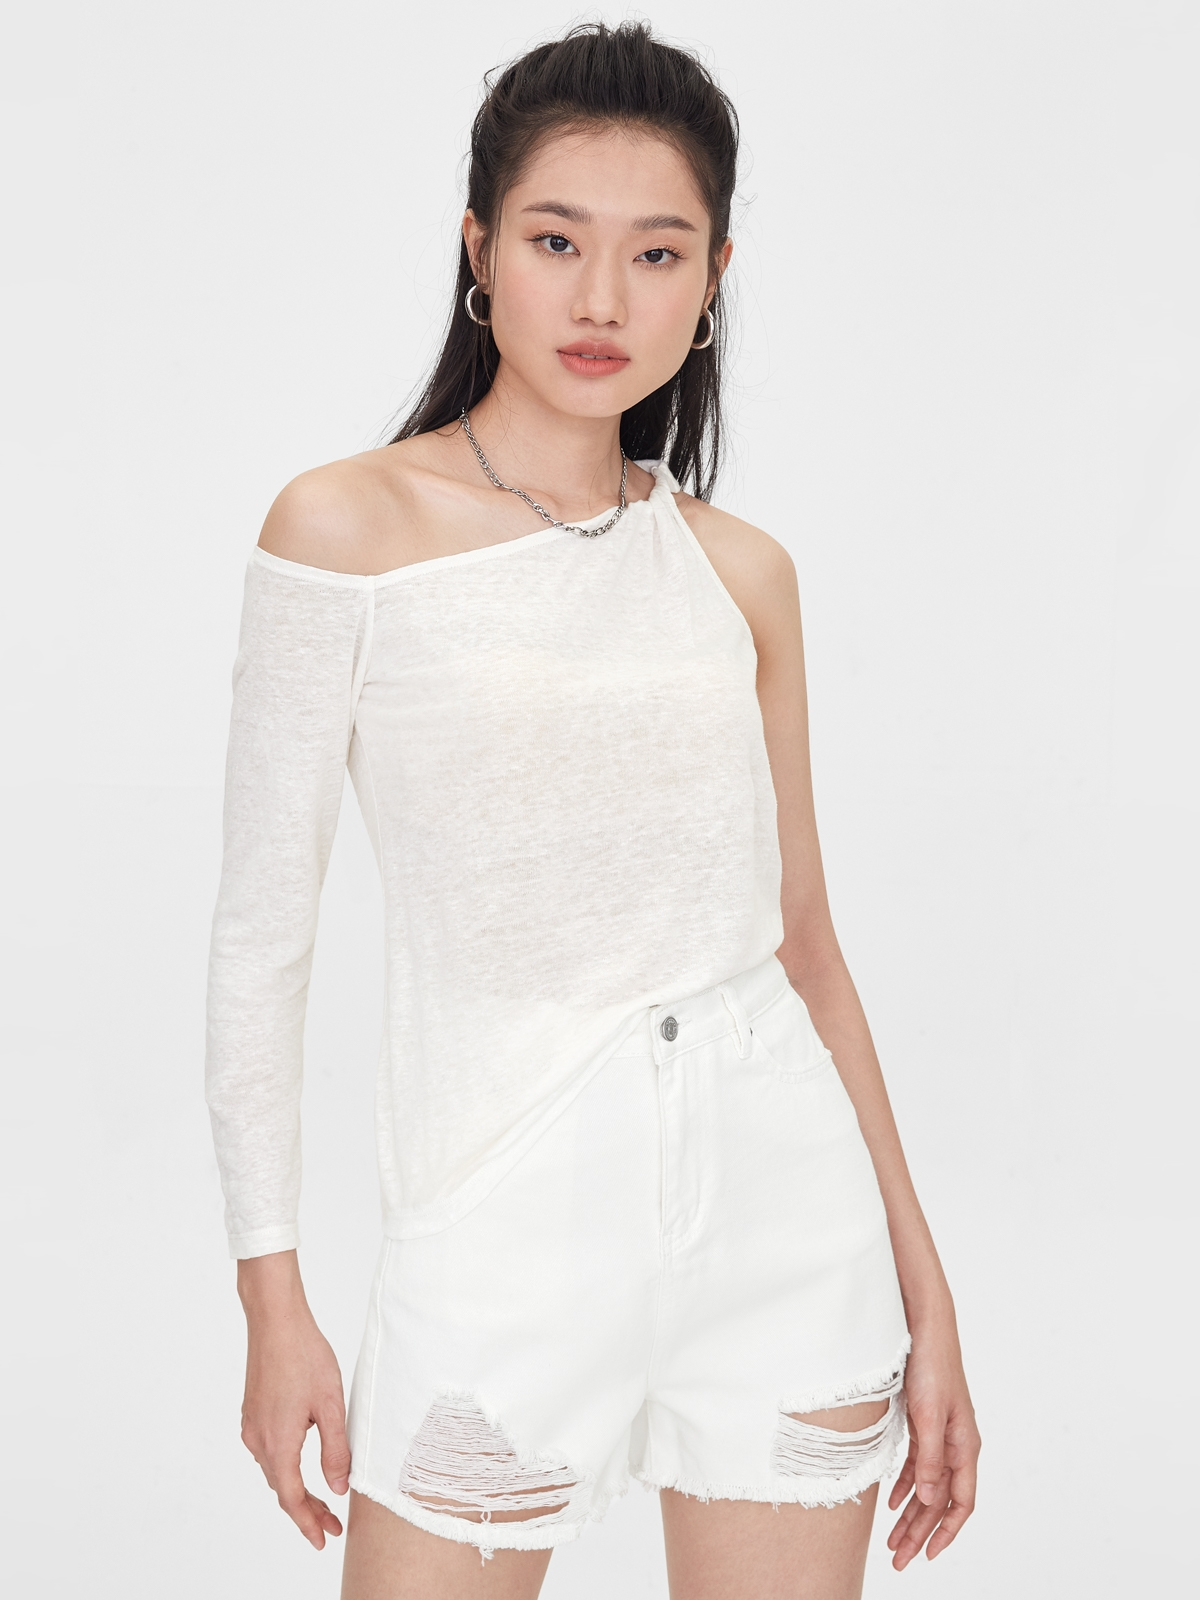 One Side Rolled Up Long Sleeve Top White